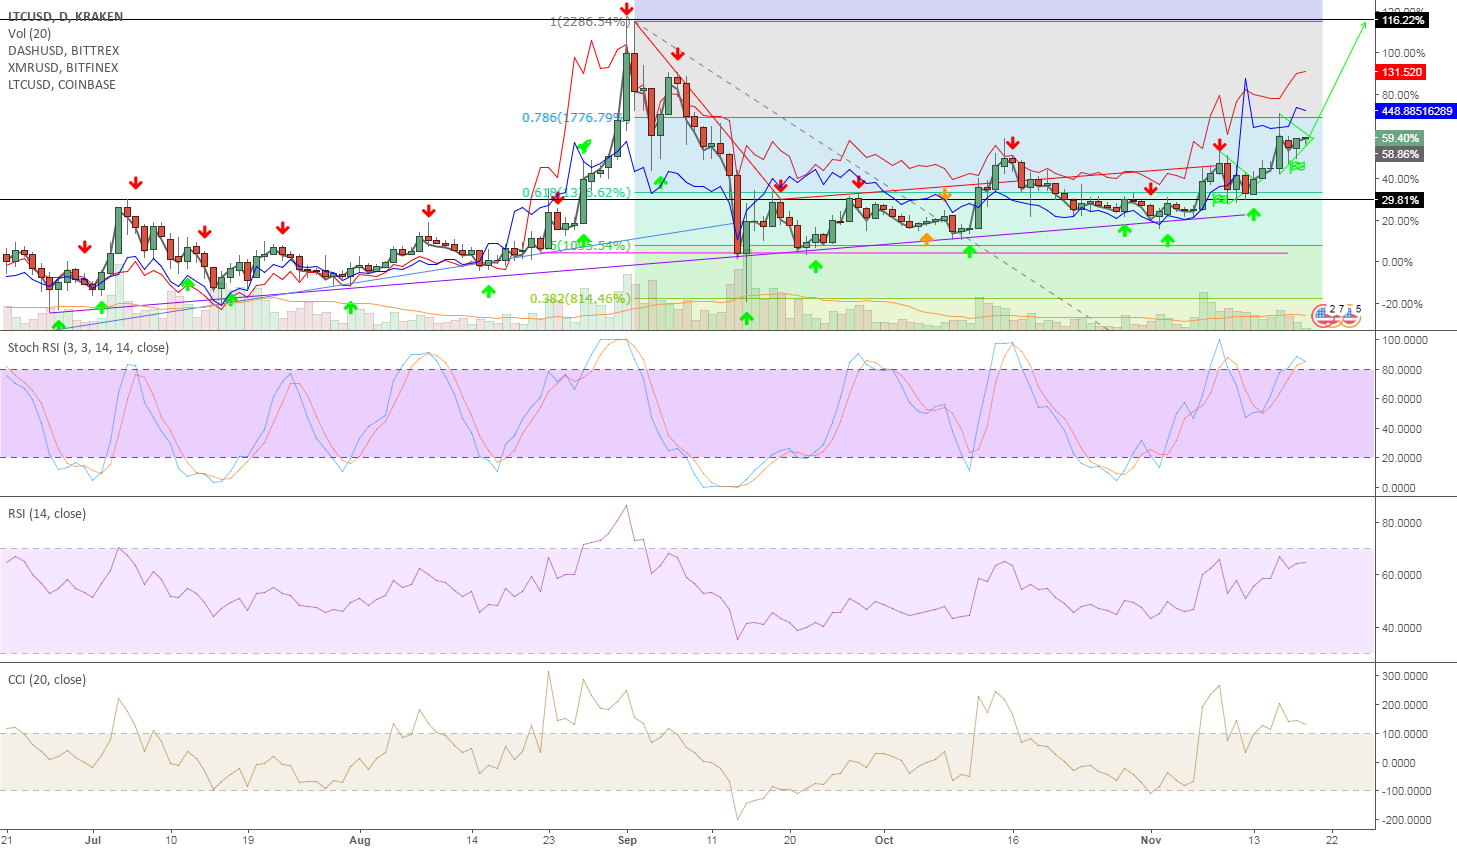 LTC in front of strong breakout